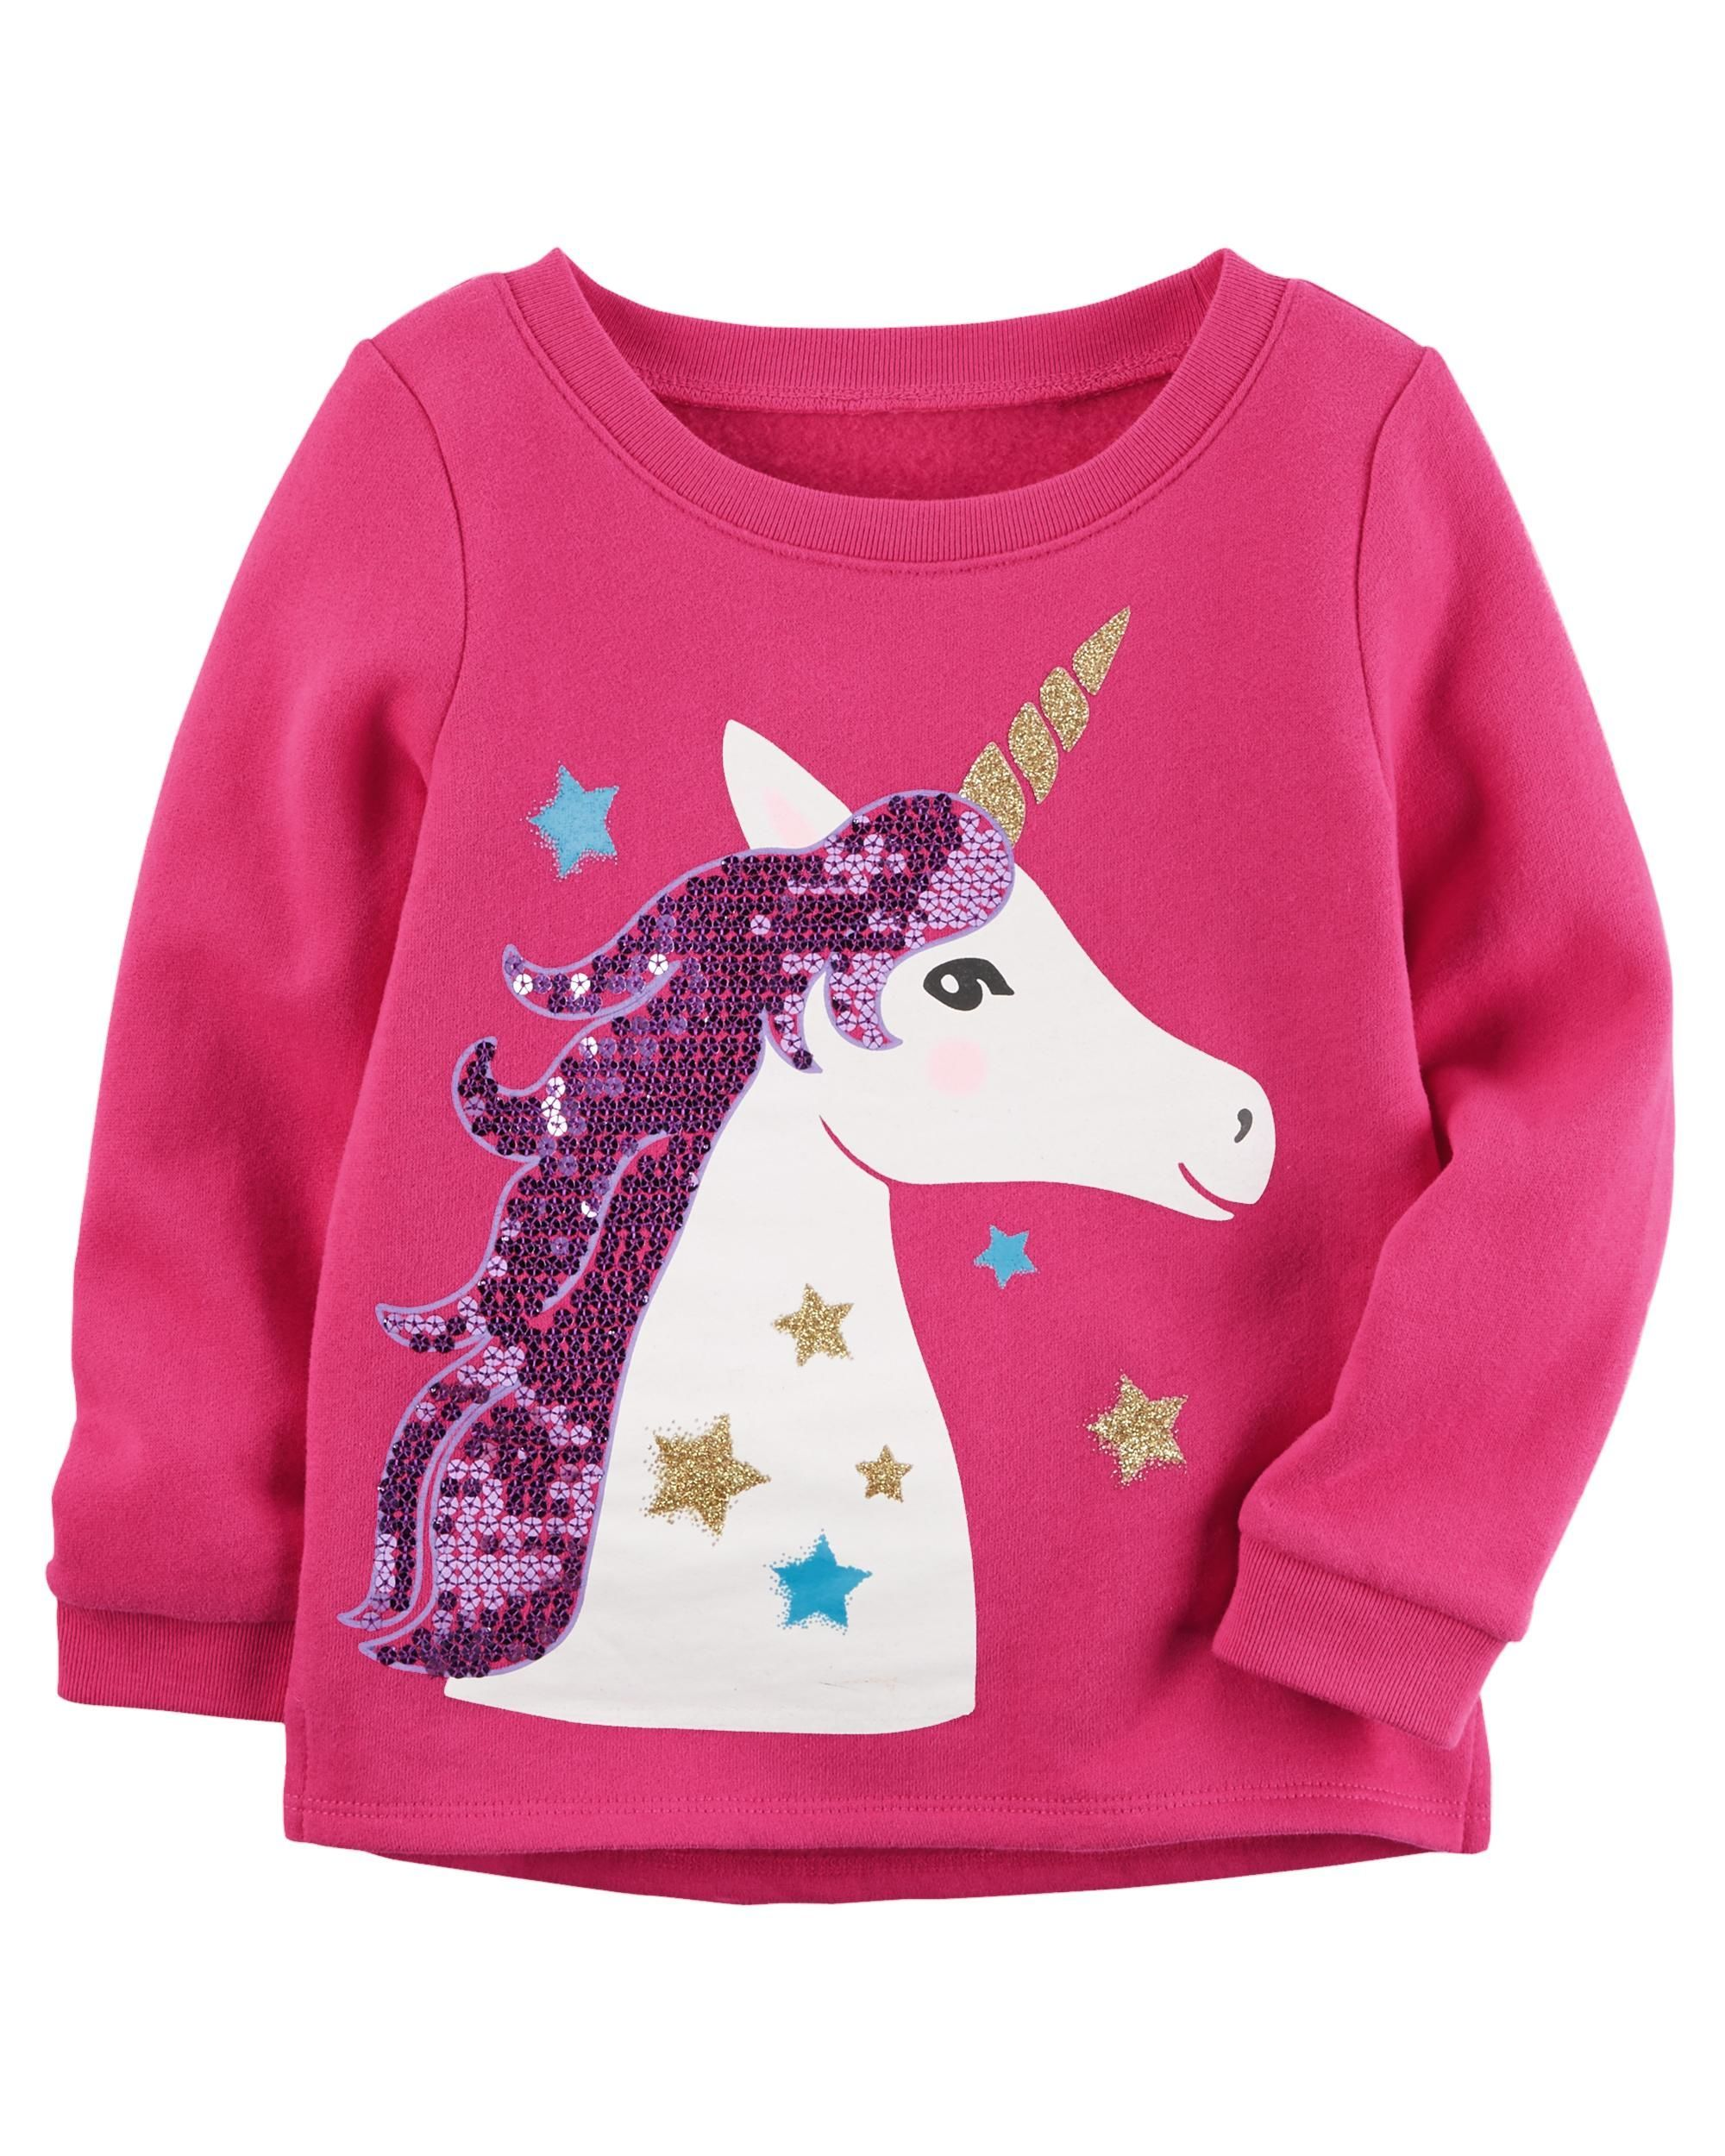 93512d2fa8f9 Unicorn Fleece Sweatshirt